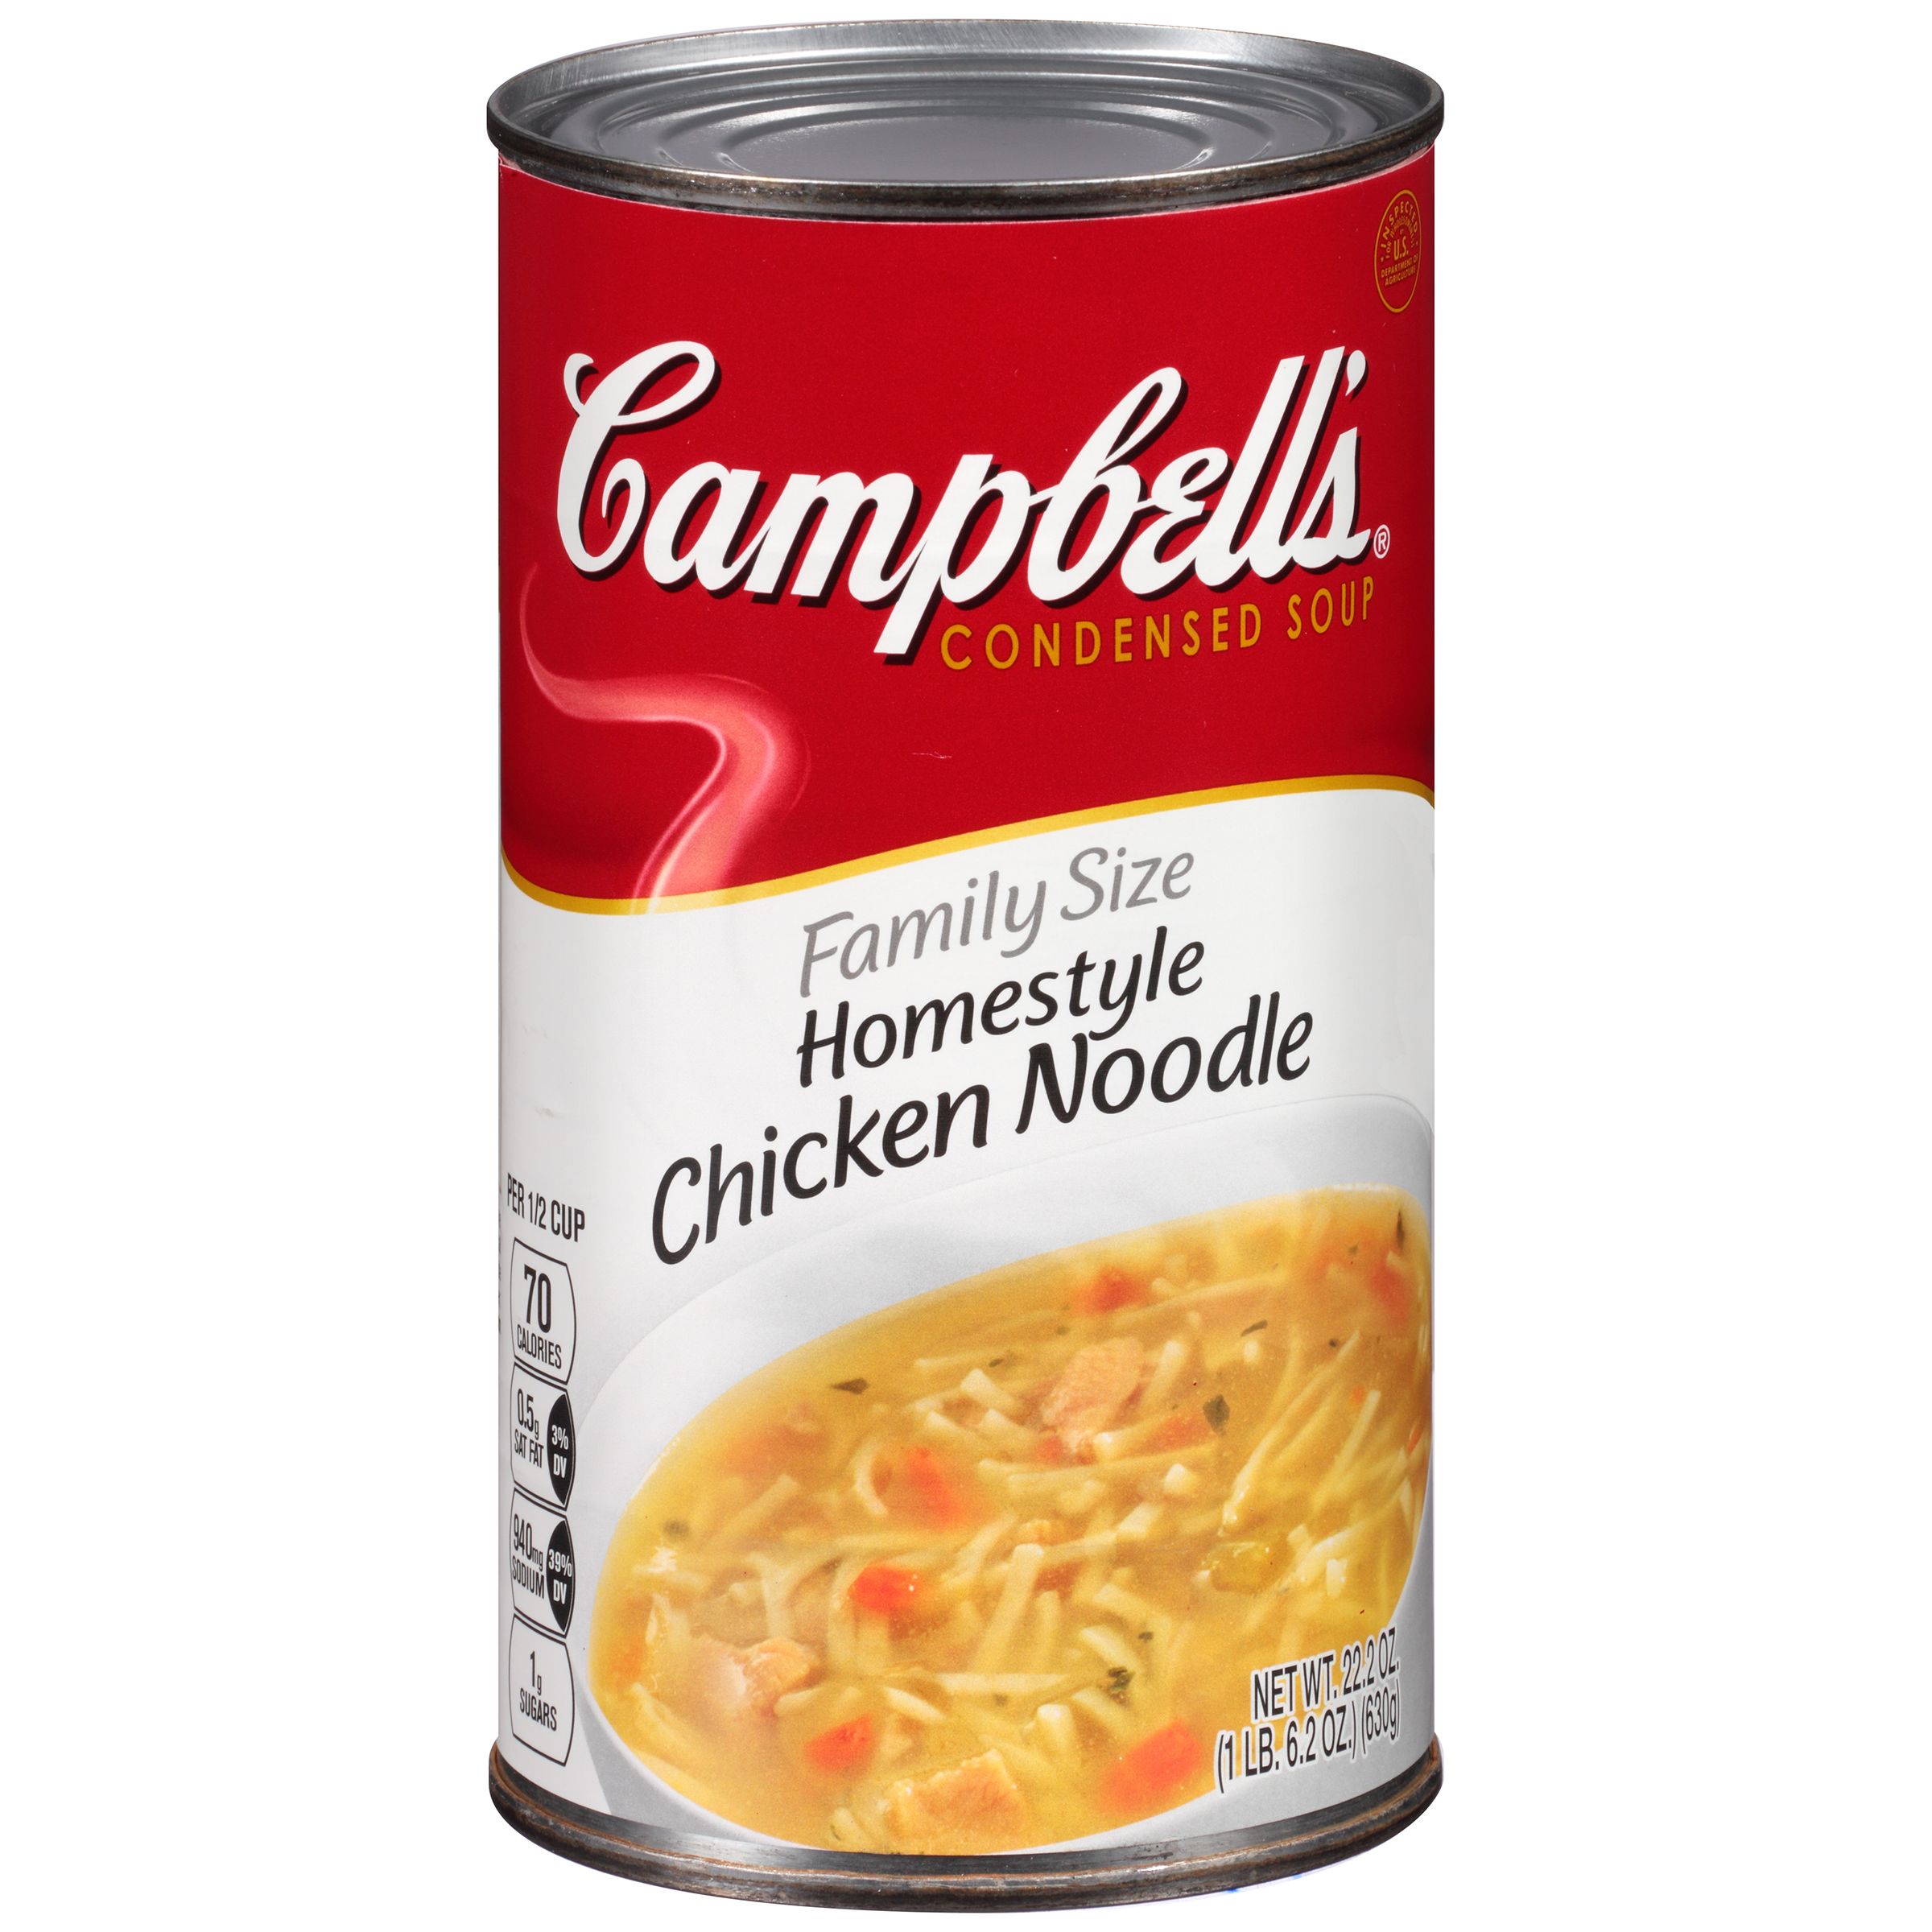 Campbell's Family Size Homestyle Chicken Noodle Soup 22.2oz